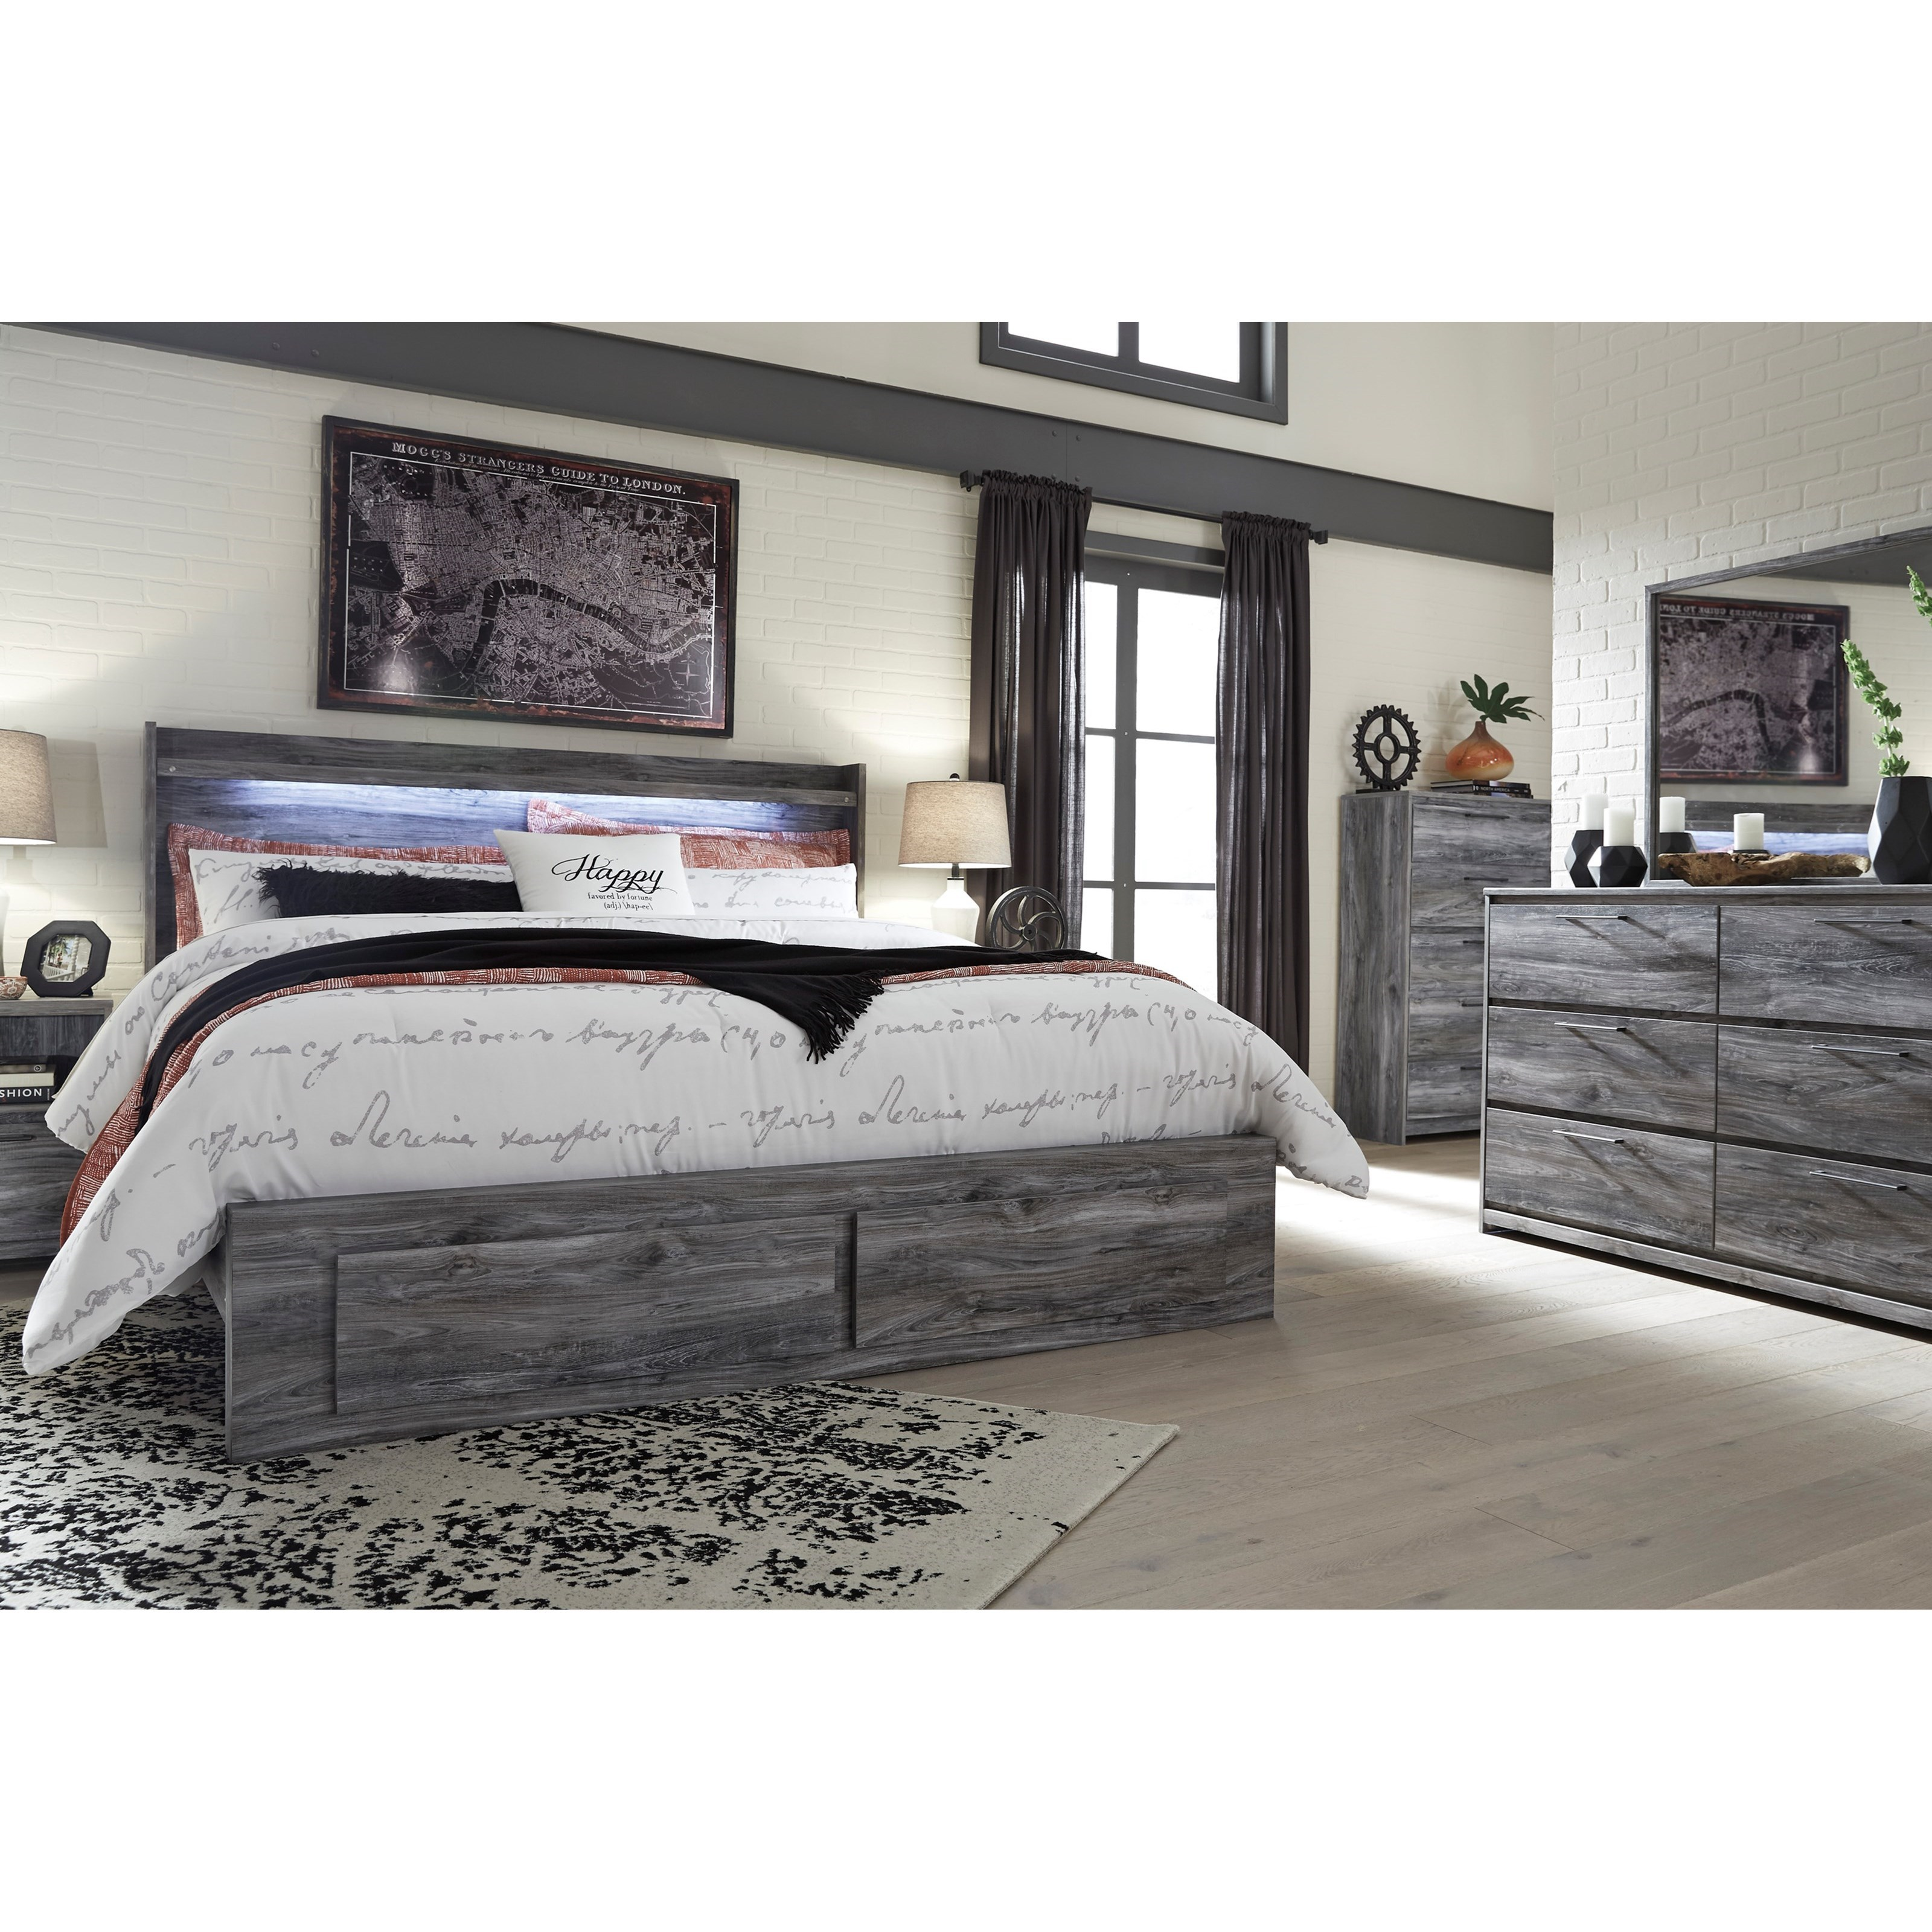 Sofa King To Ol: Signature Design By Ashley Baystorm King Panel Bed With